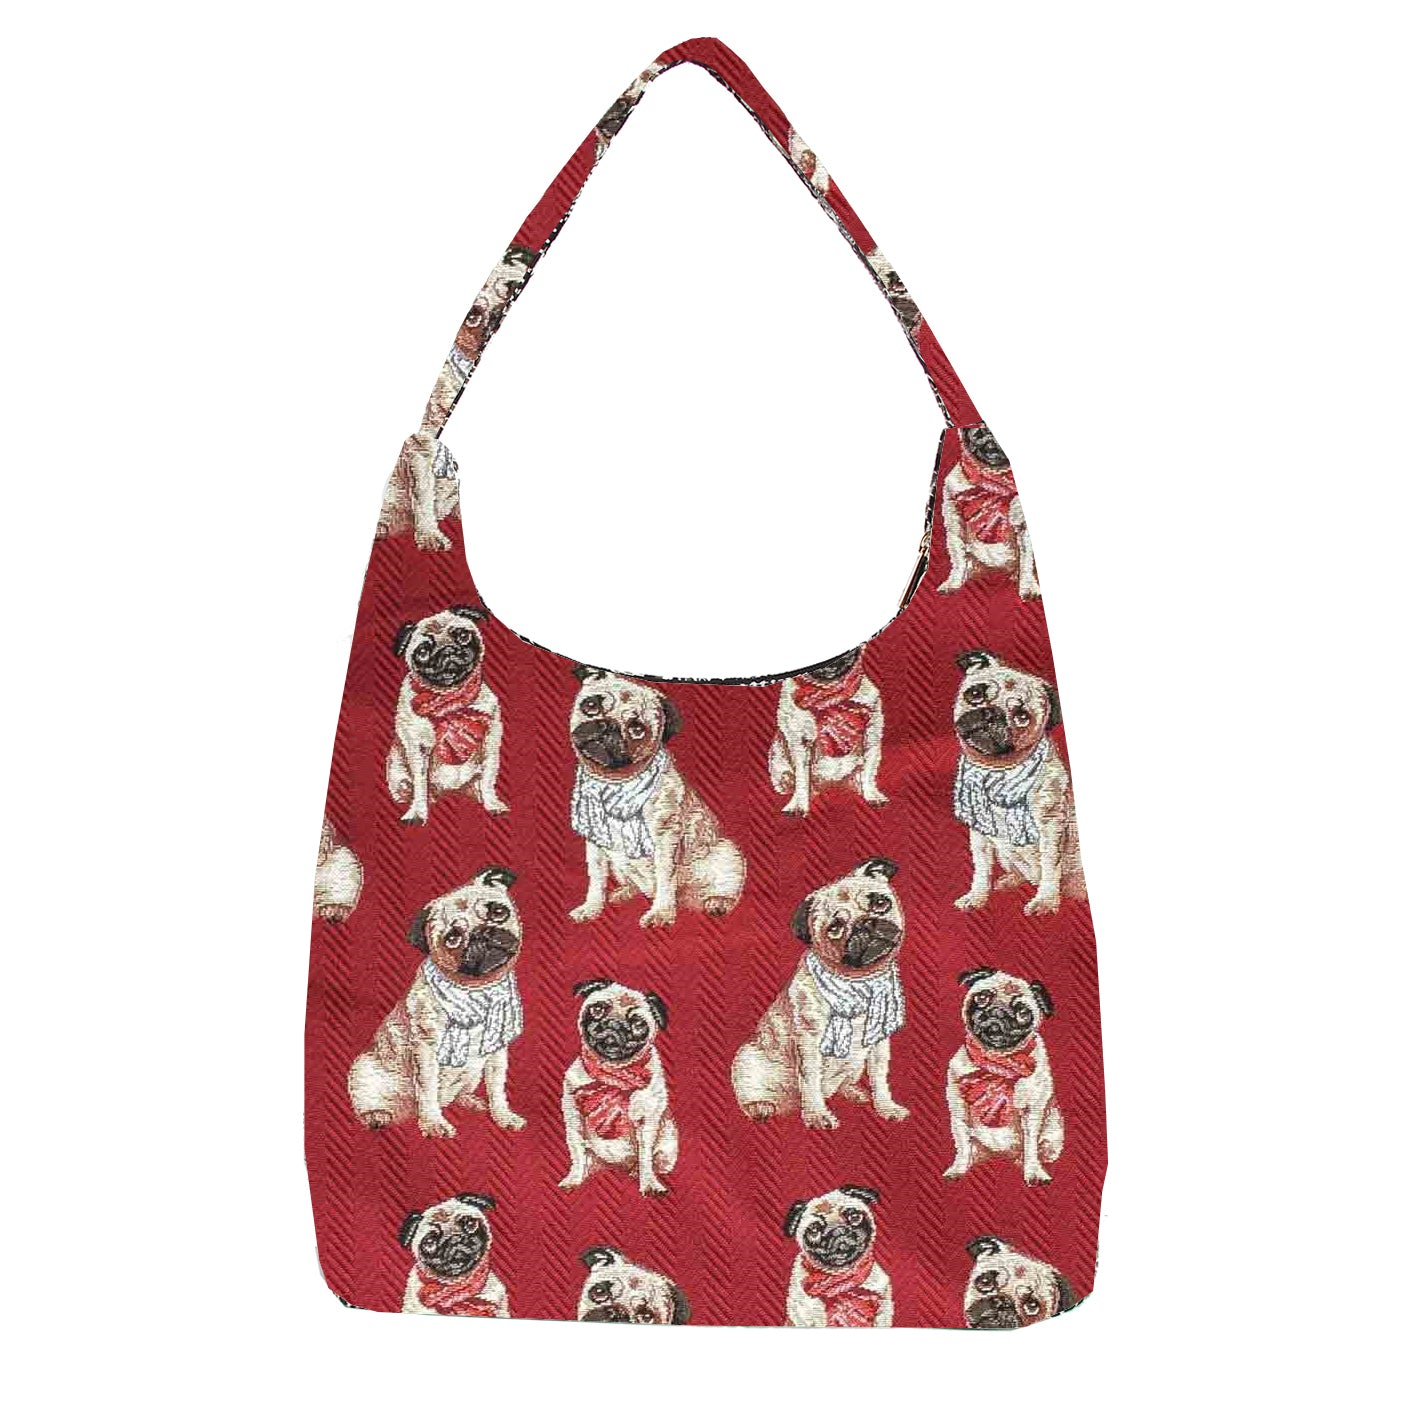 HOBO-PUG | PUG DOG HOBO HANDBAG SHOULDER BAG - www.signareusa.com